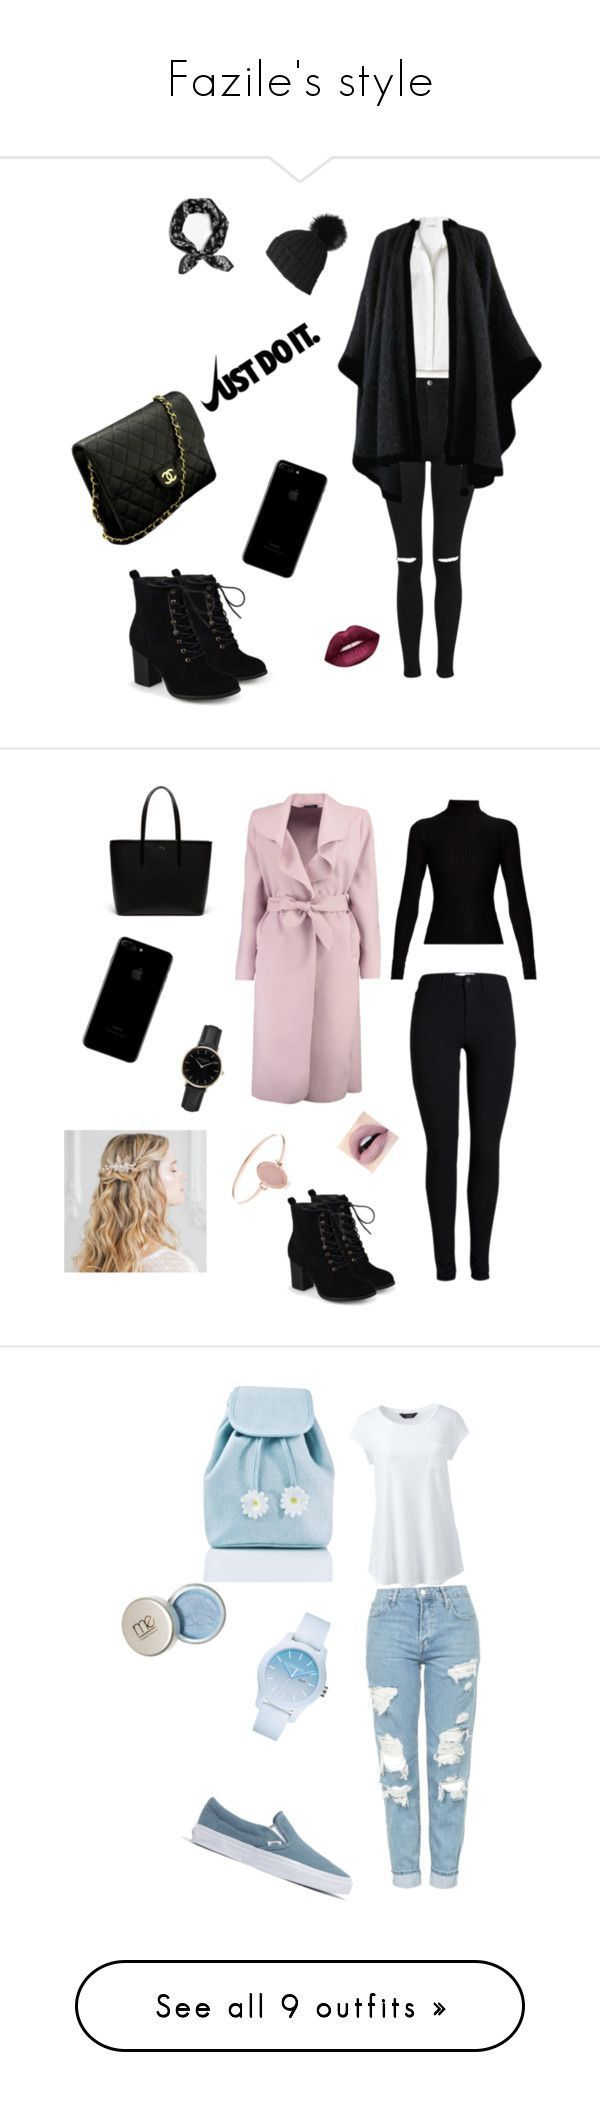 """Fazile's style"" by fazilebrahimi on Polyvore featuring Topshop, Lacoste, rag & bone, Journee Collection, Chanel, Black, Lime Crime, Yves Saint Laurent, NIKE and outfit"